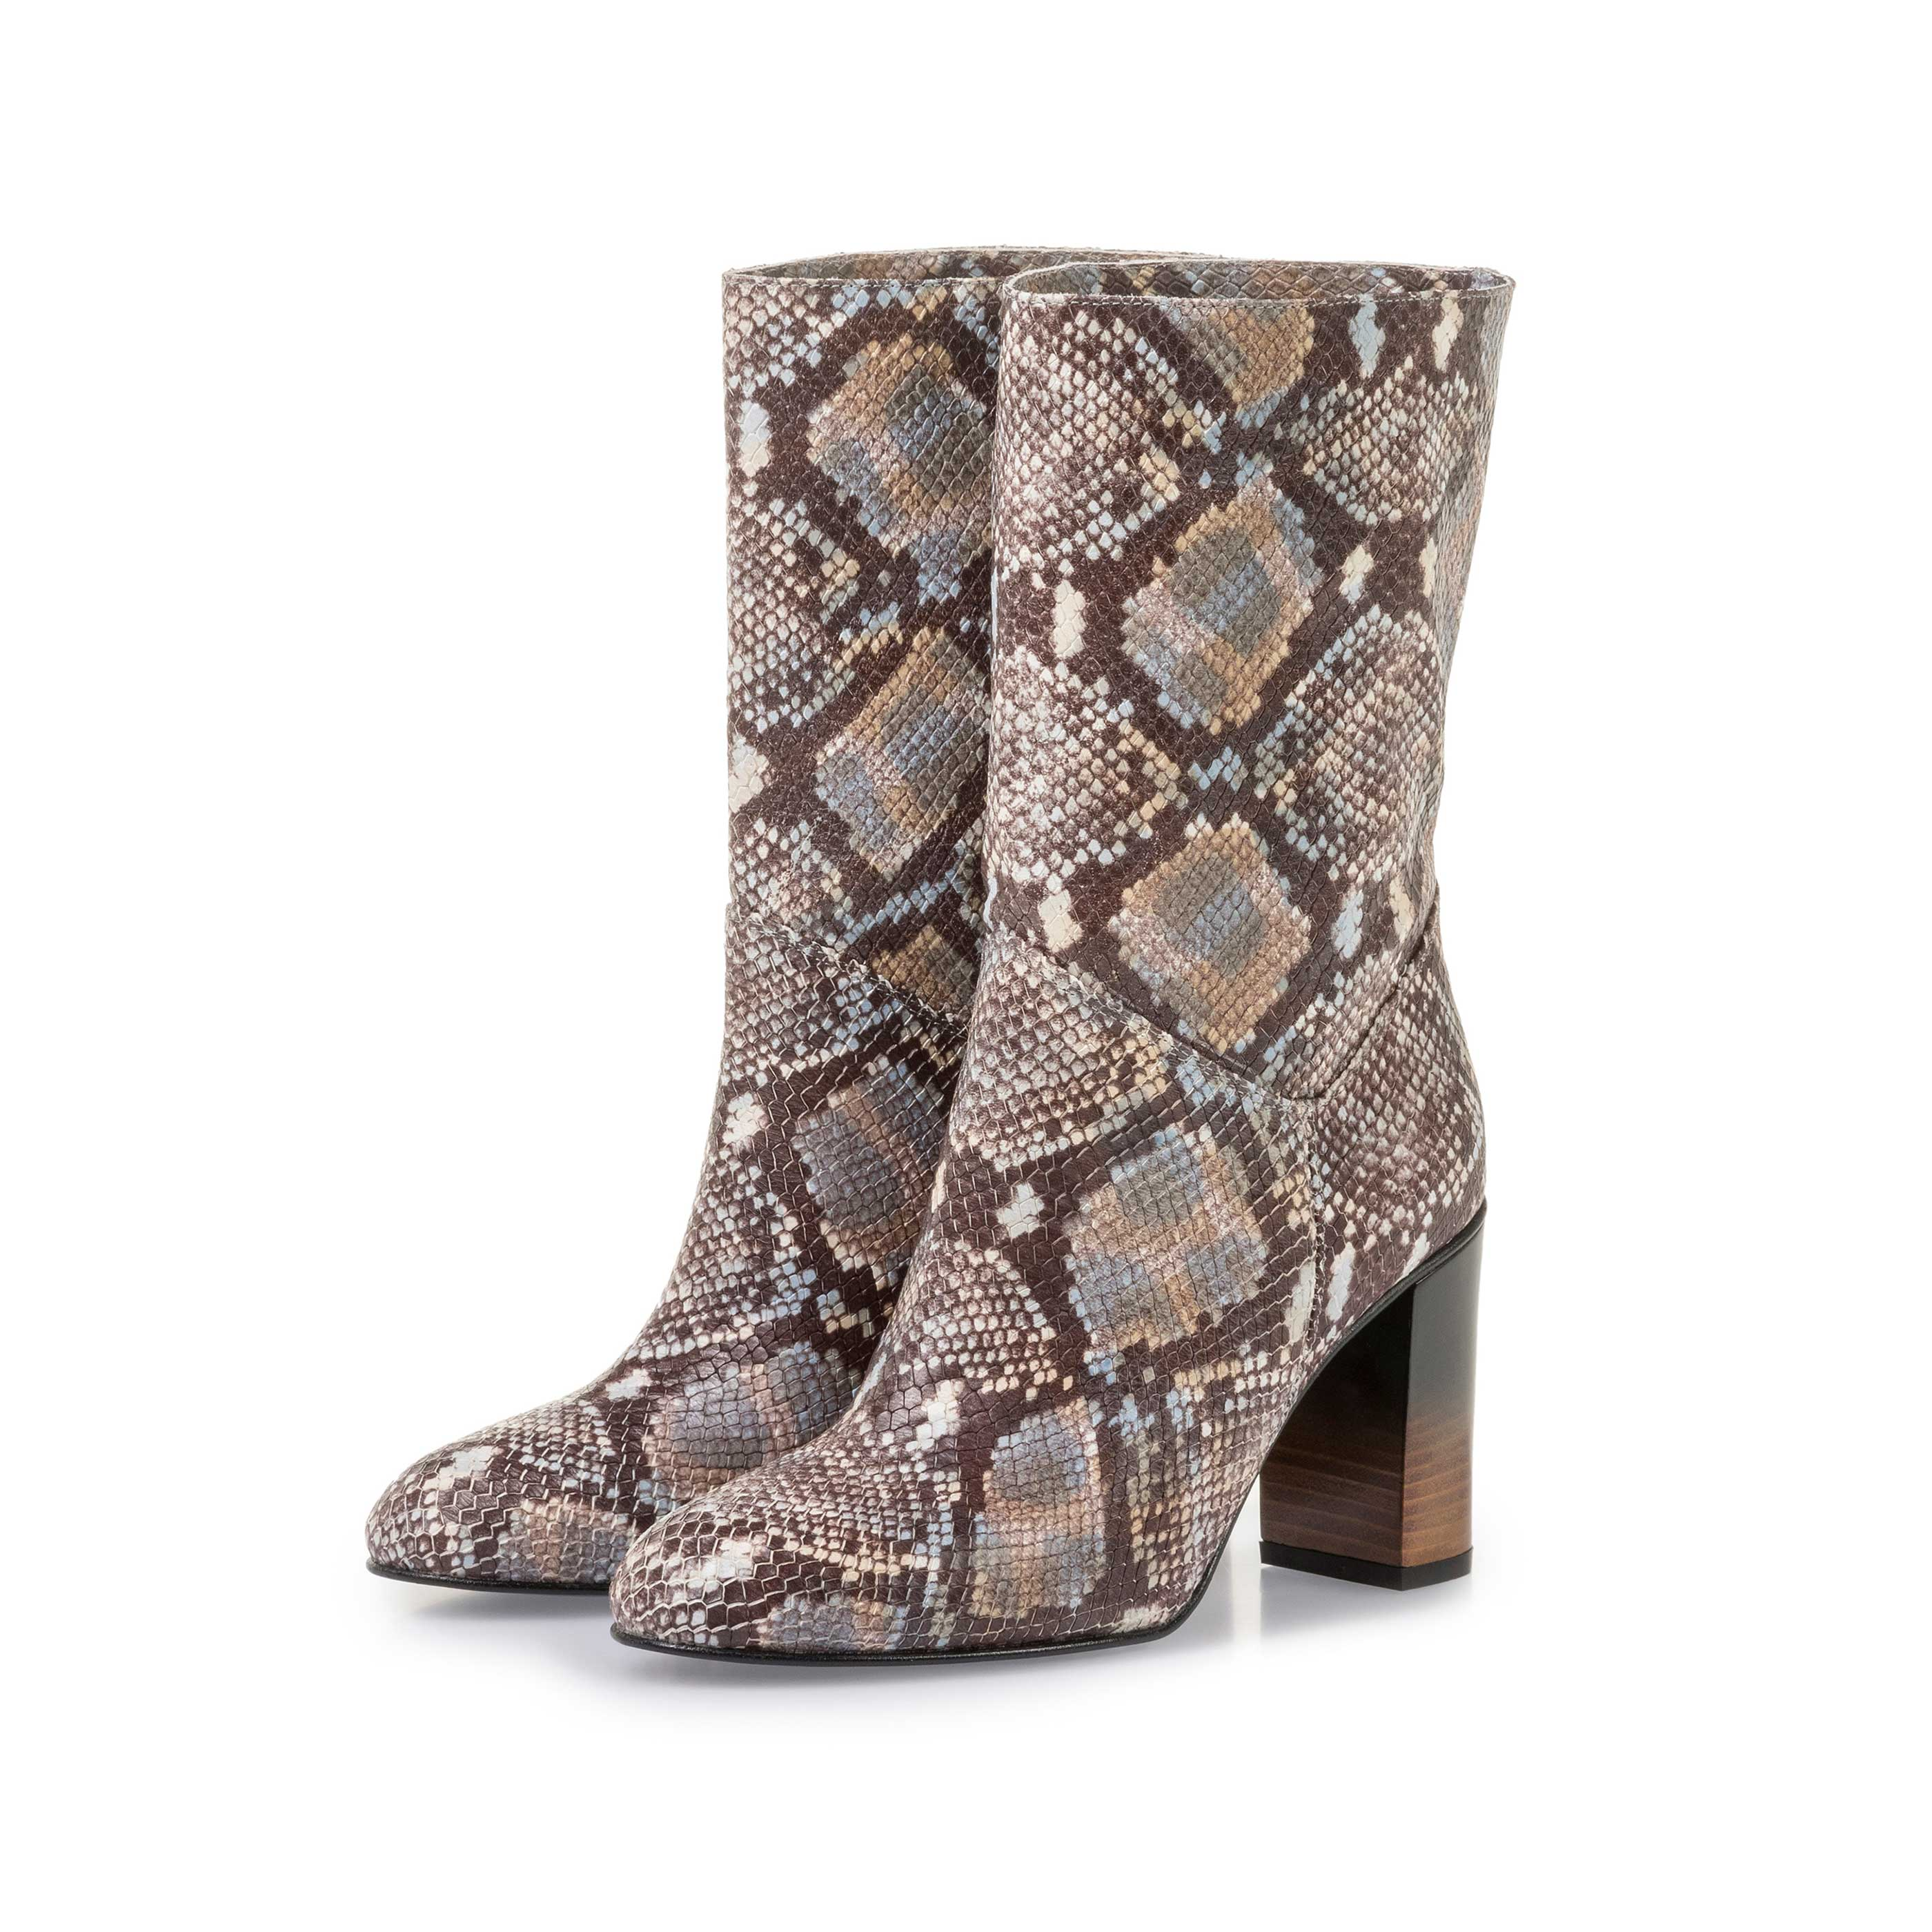 85718/02 - Brown and white leather boots with snake print